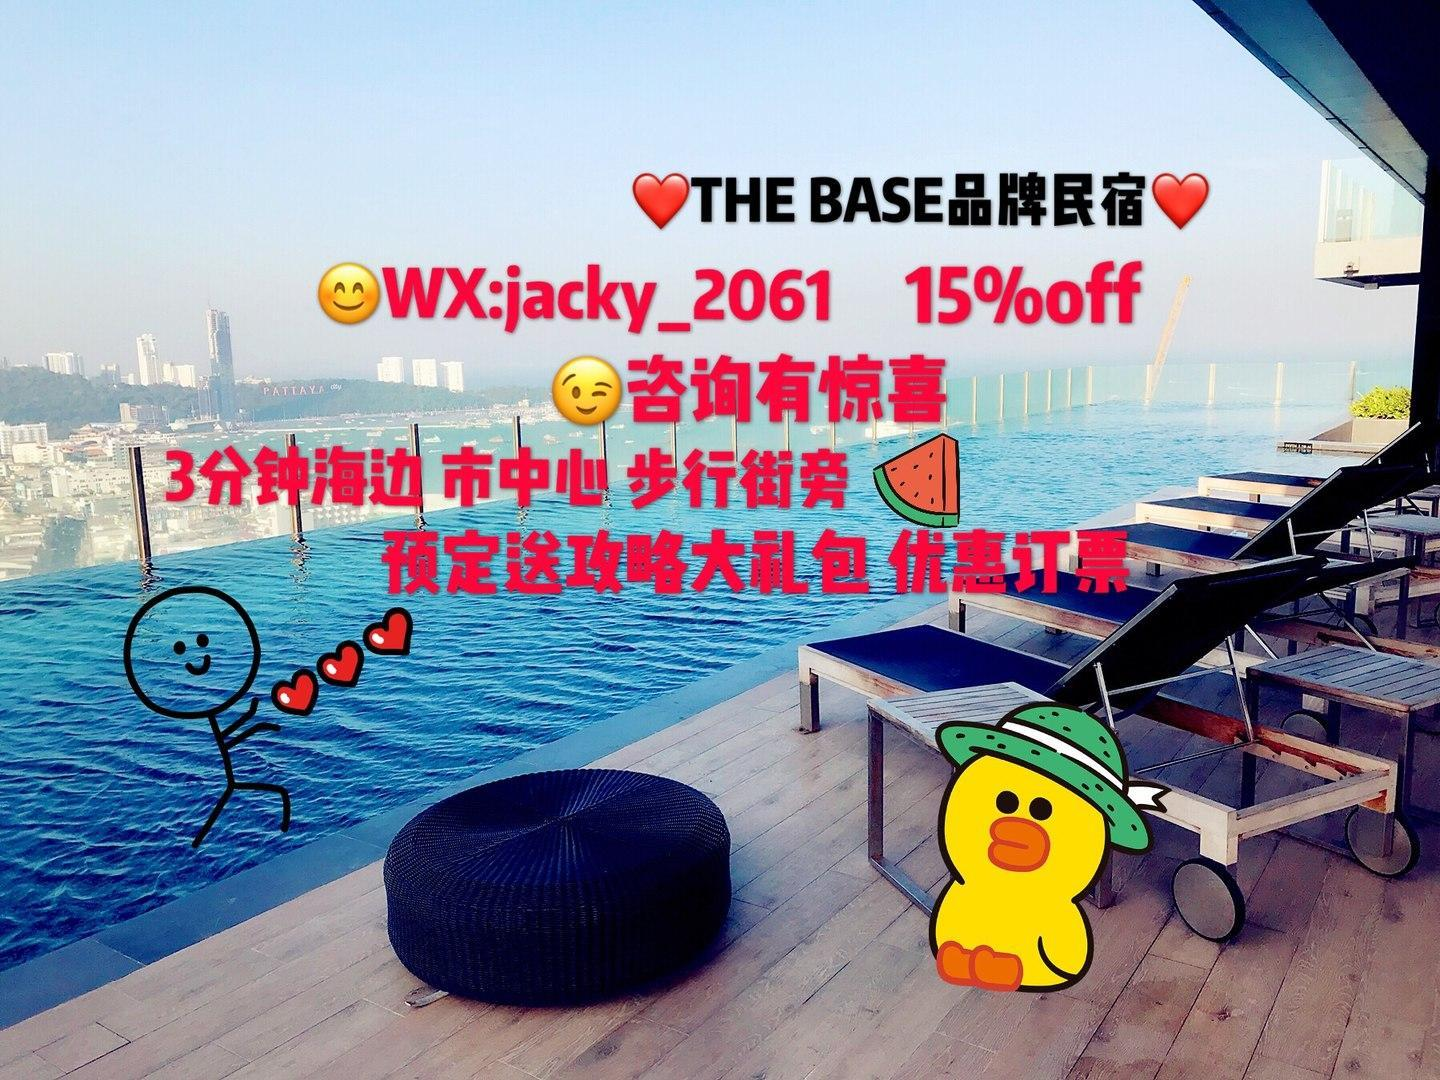 E3THE BASE Brand BandB Recommend Infinity Pool